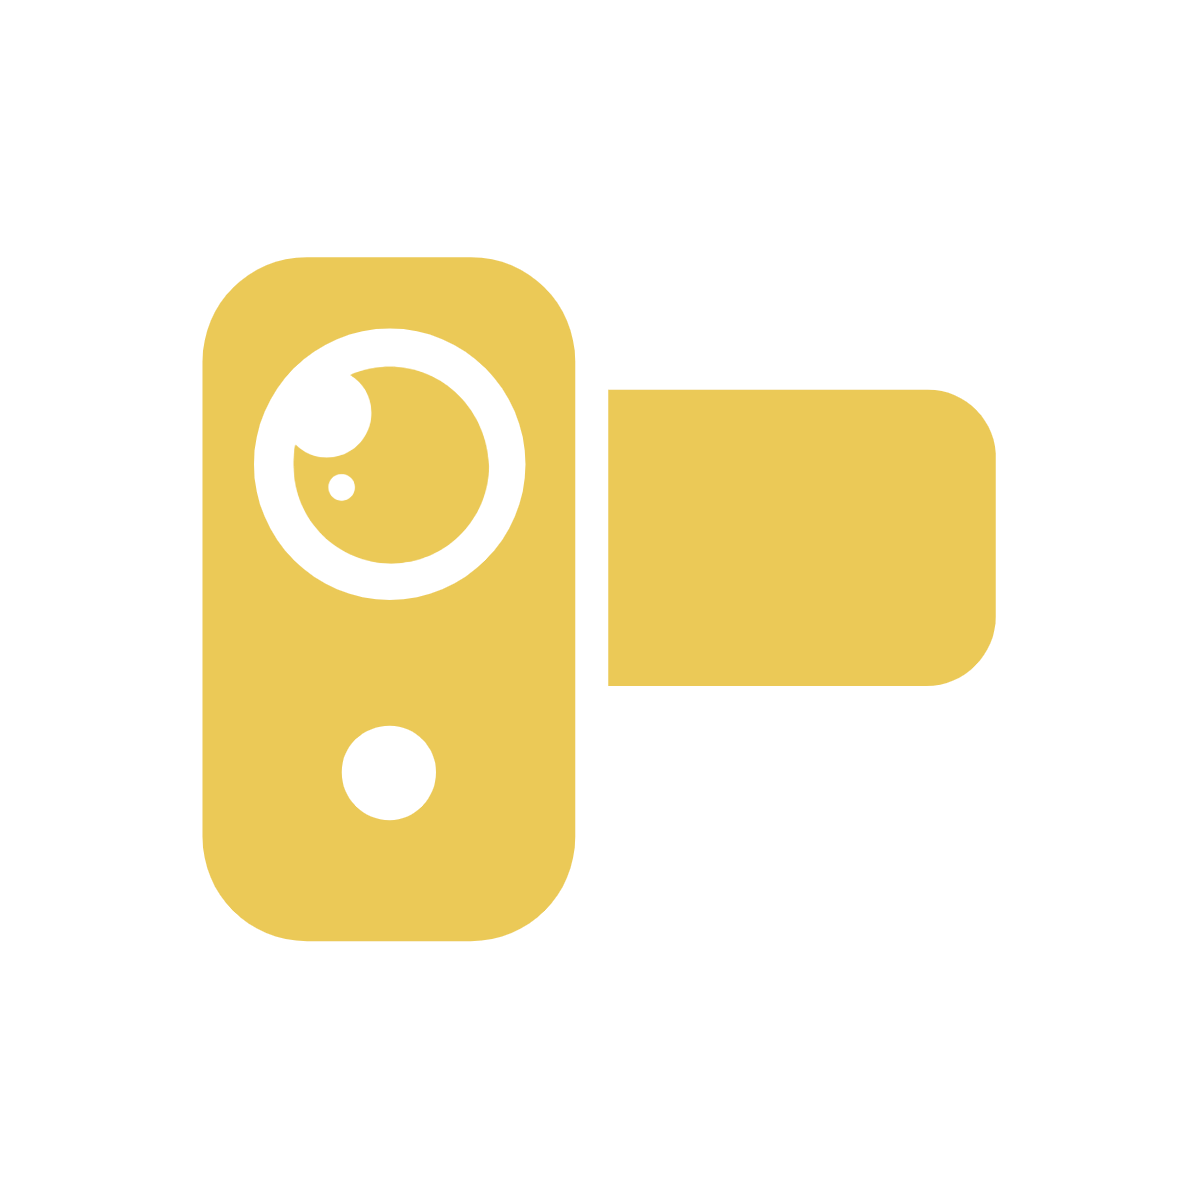 Video project ideas icon